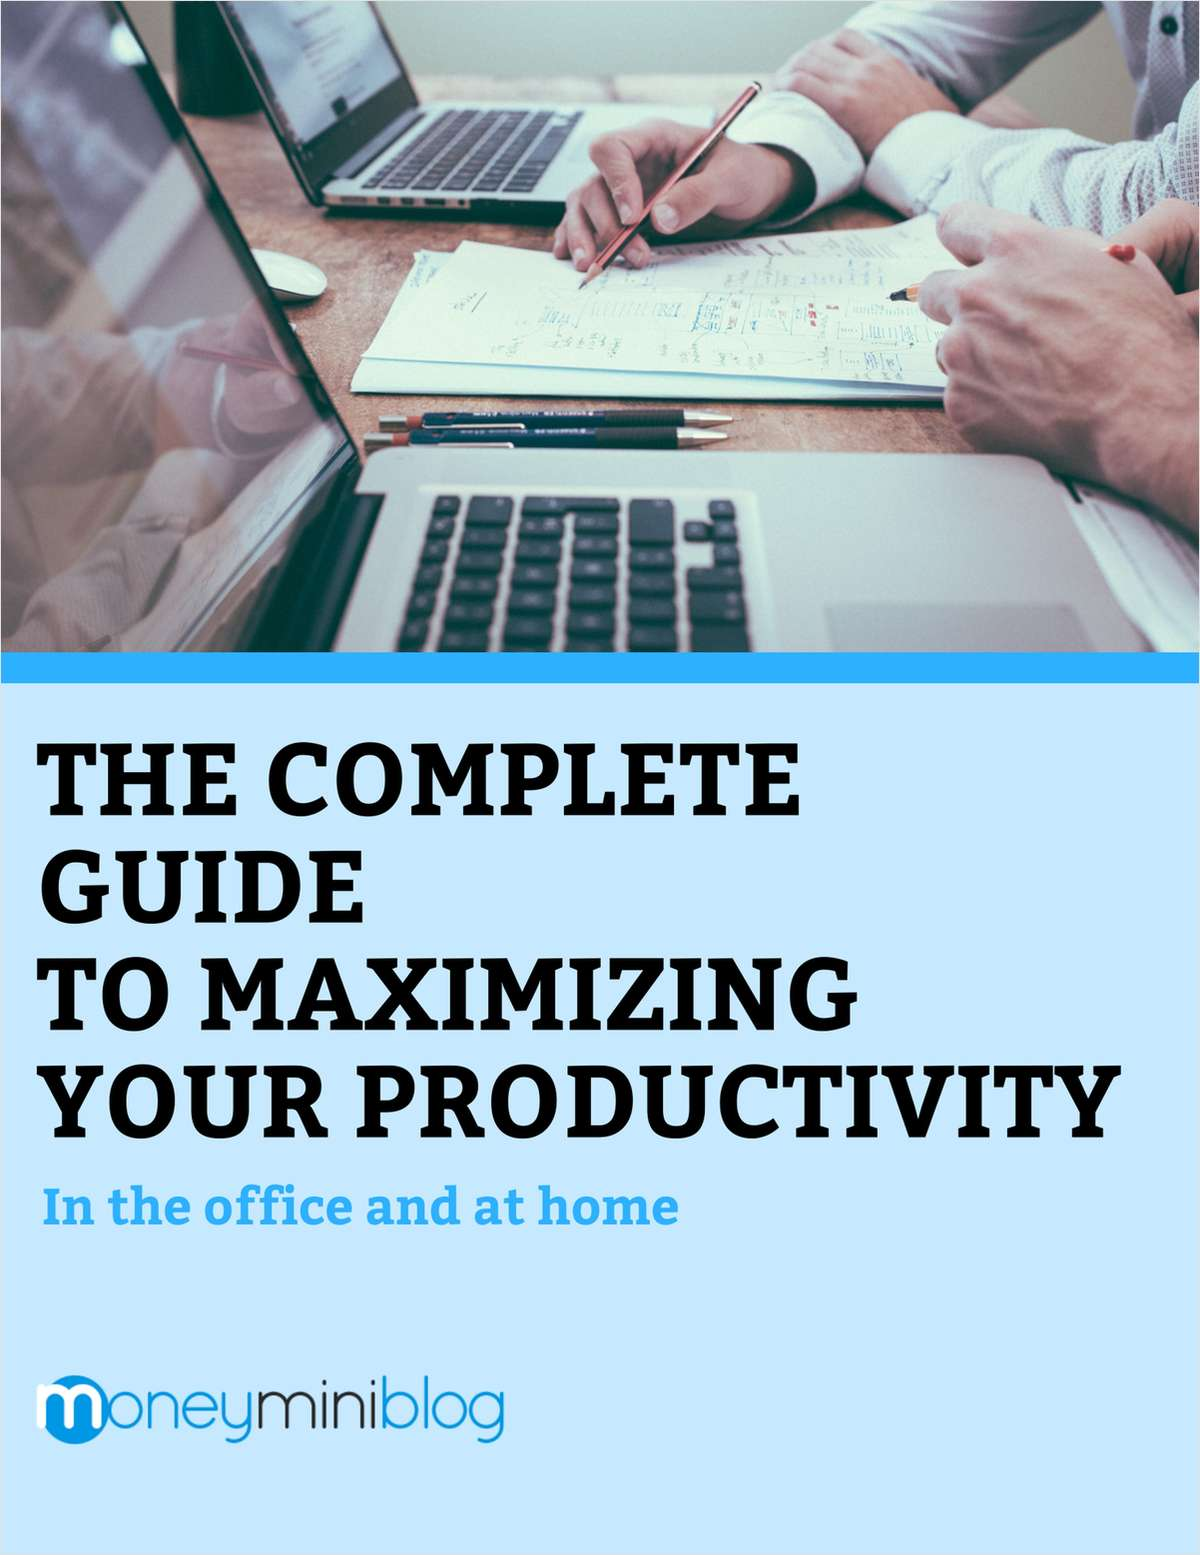 The Complete Guide to Maximizing Your Productivity